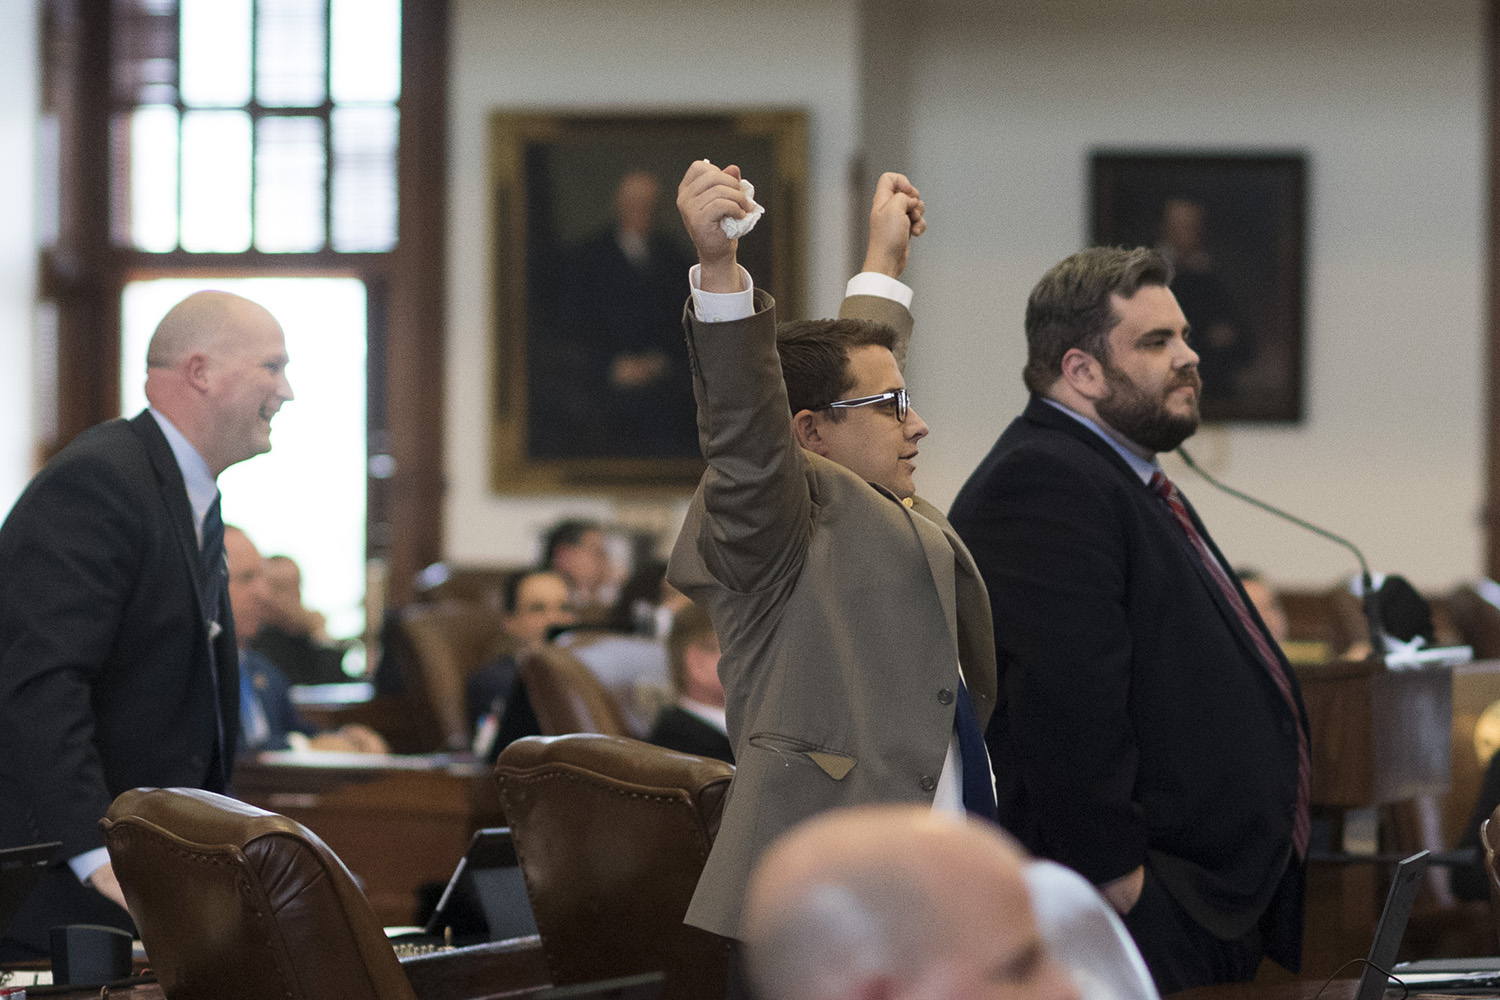 State Rep. Briscoe Cain, R-Deer Park, raises his arms in celebration as he and other members of the so-called Freedom Caucus killed more than 100 bills.